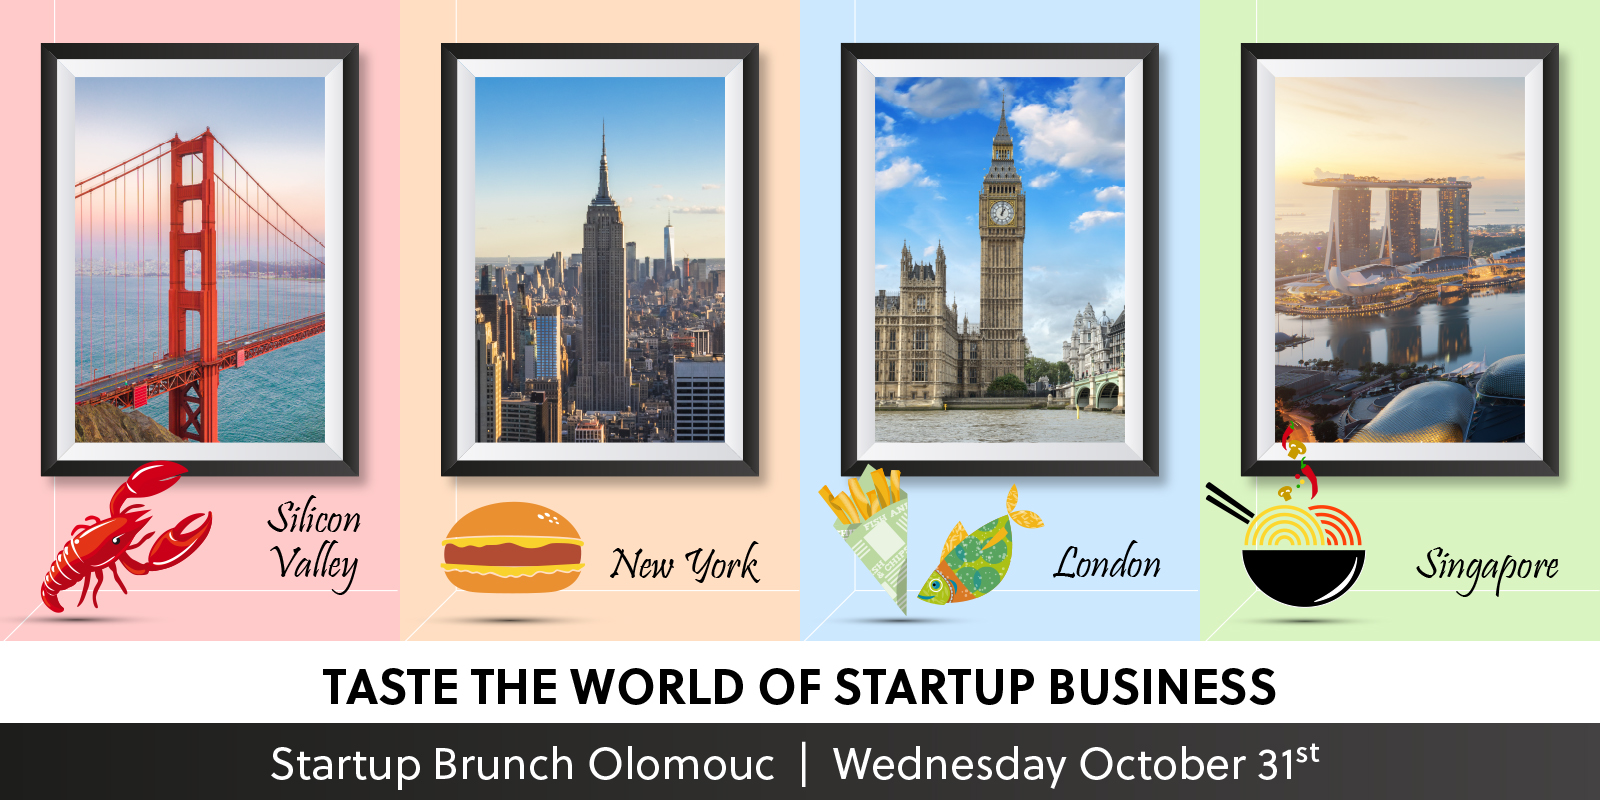 Startup Brunch Olomouc - Taste the World of Startup Business attachment